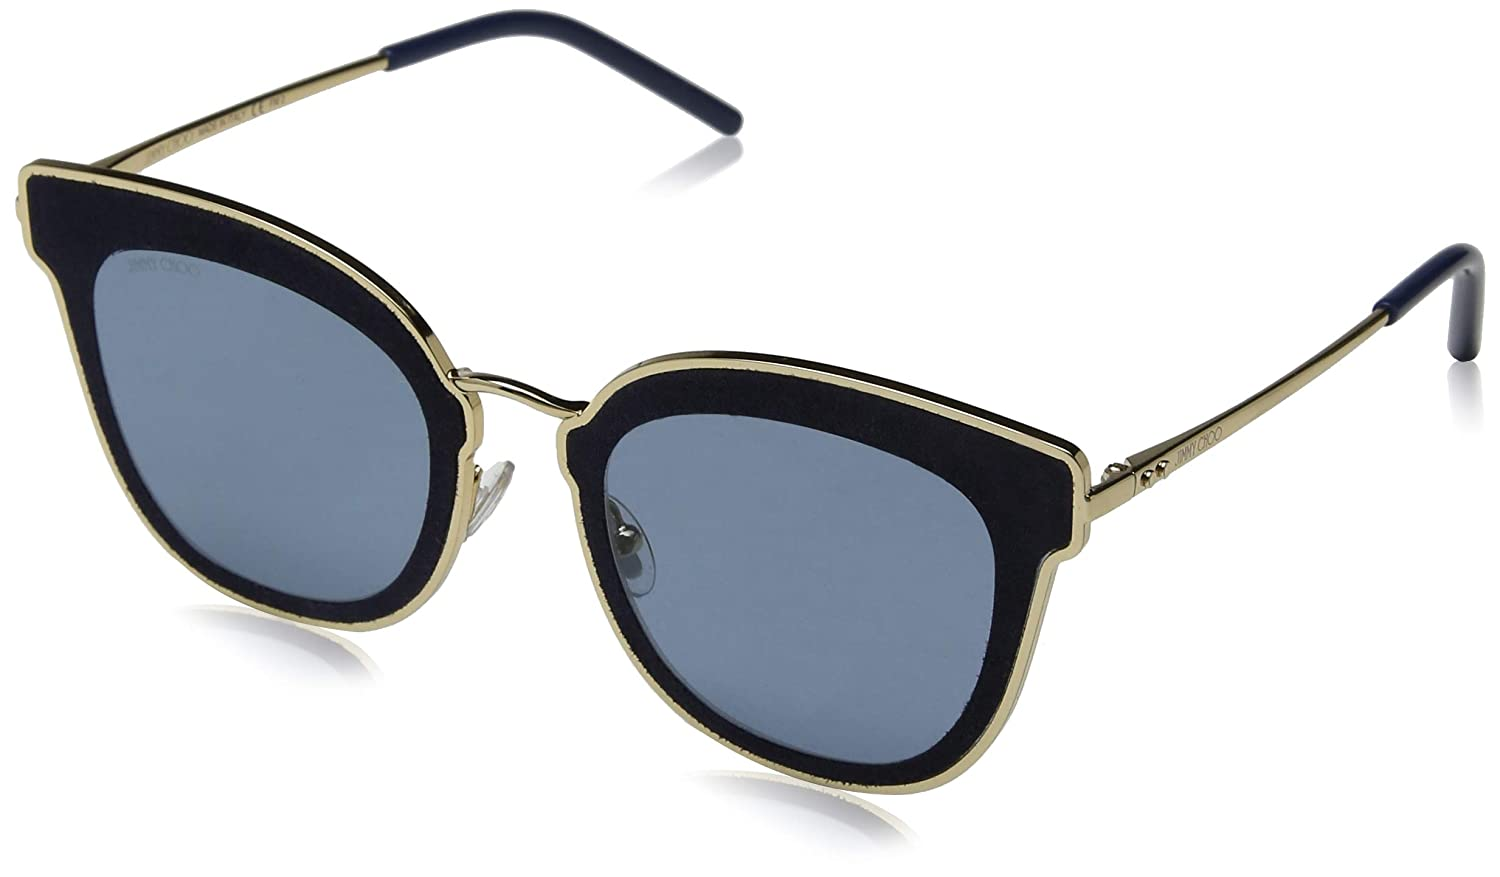 8cec2f20bcb8 Jimmy Choo sunglasses (NILE-S LKS/A9) Gold - Glitter Blue - Blue lenses at  Amazon Women's Clothing store: